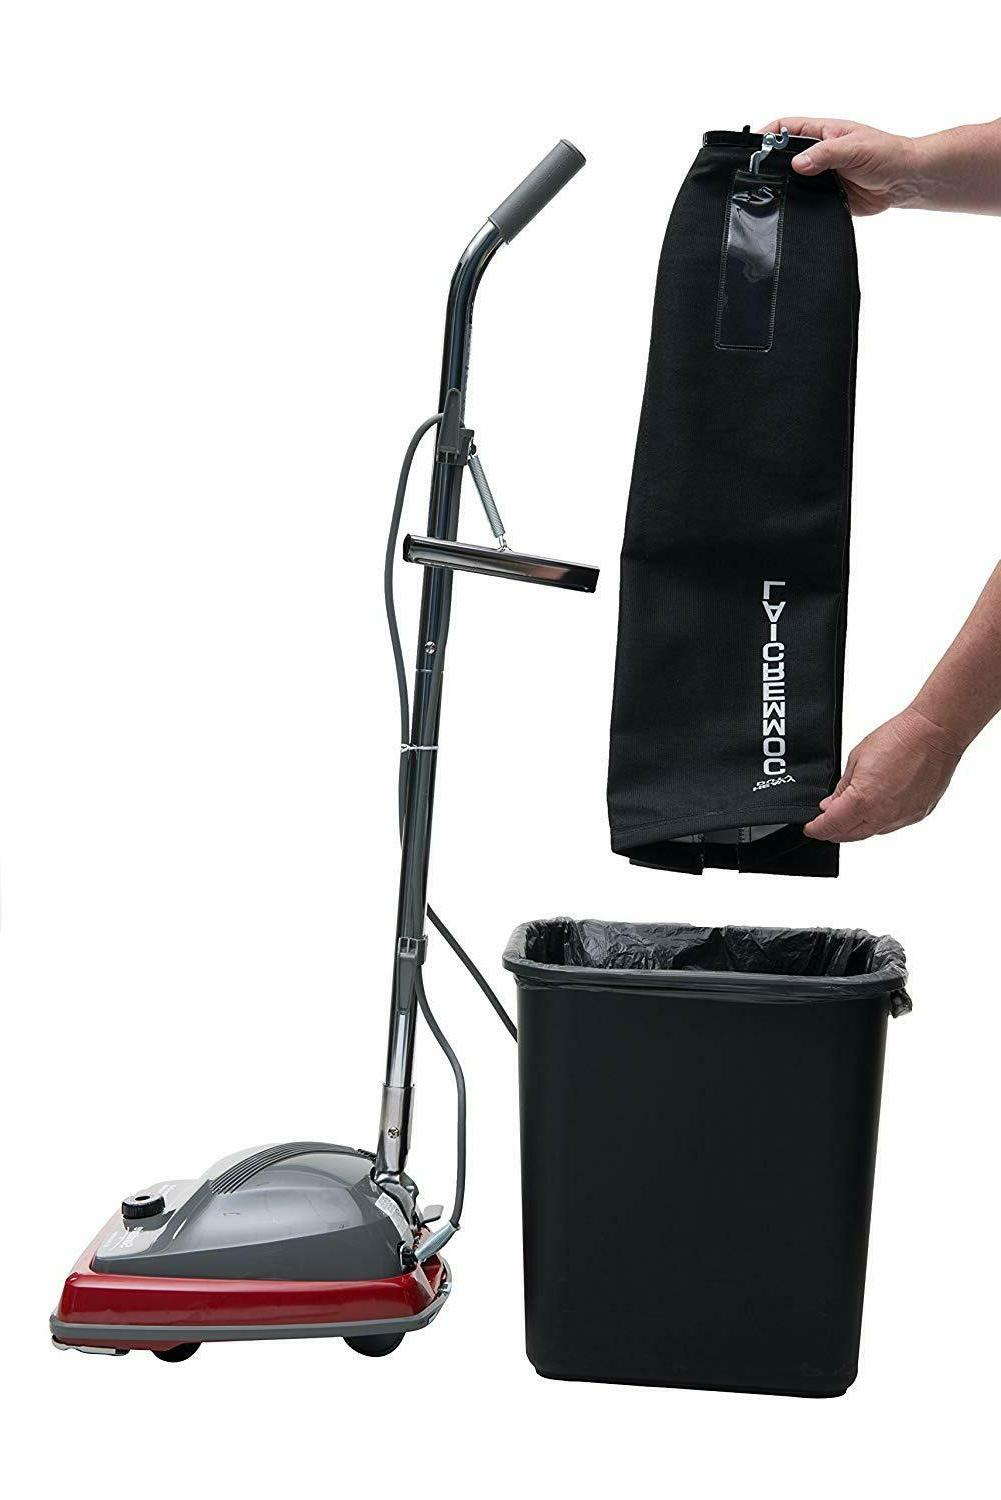 Vacuum Cleaner Upright Easy Commercial Hotel Home